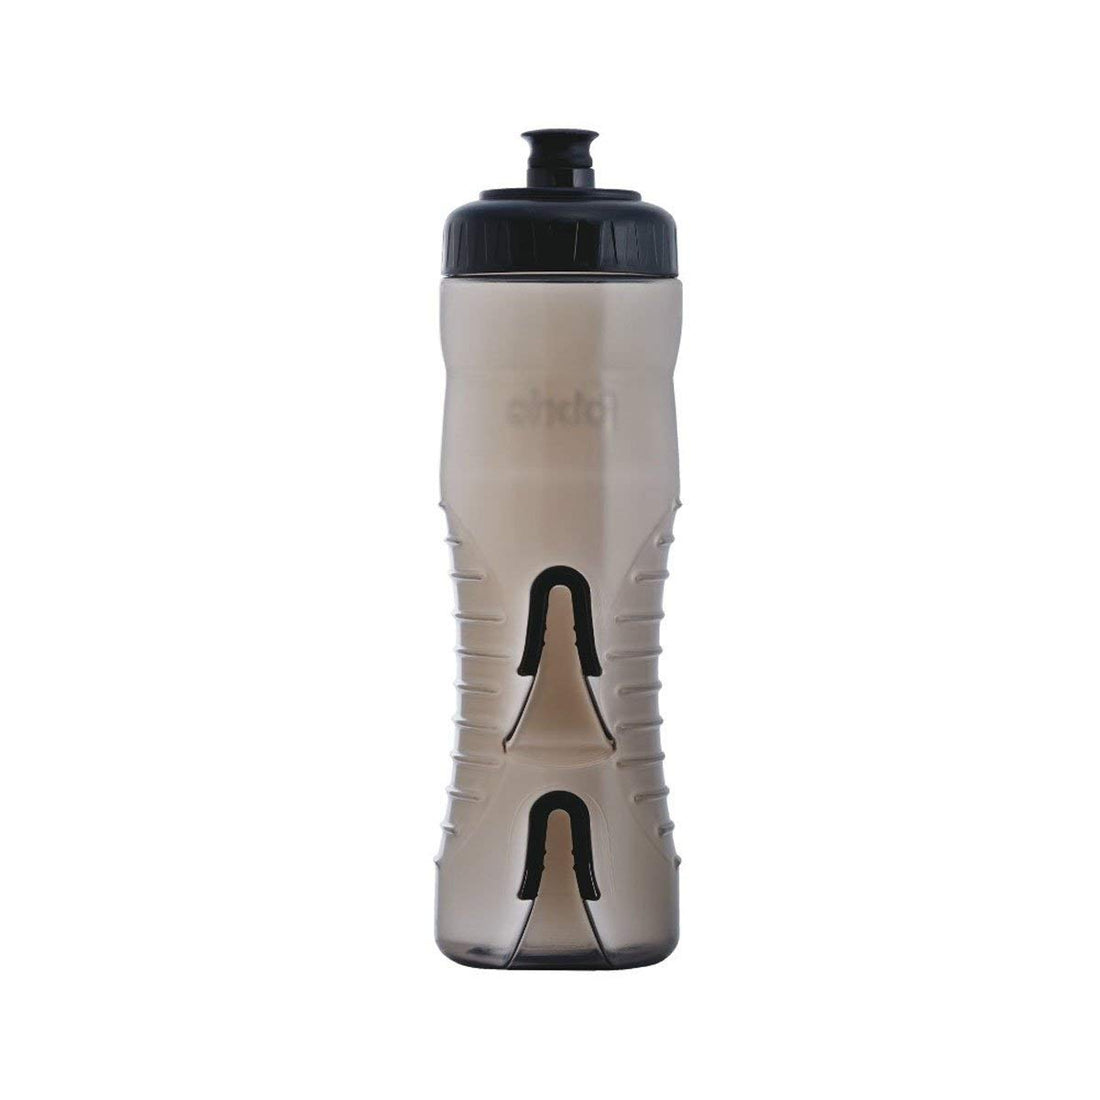 FABRIC Cageless Water Bottle Black 750ml